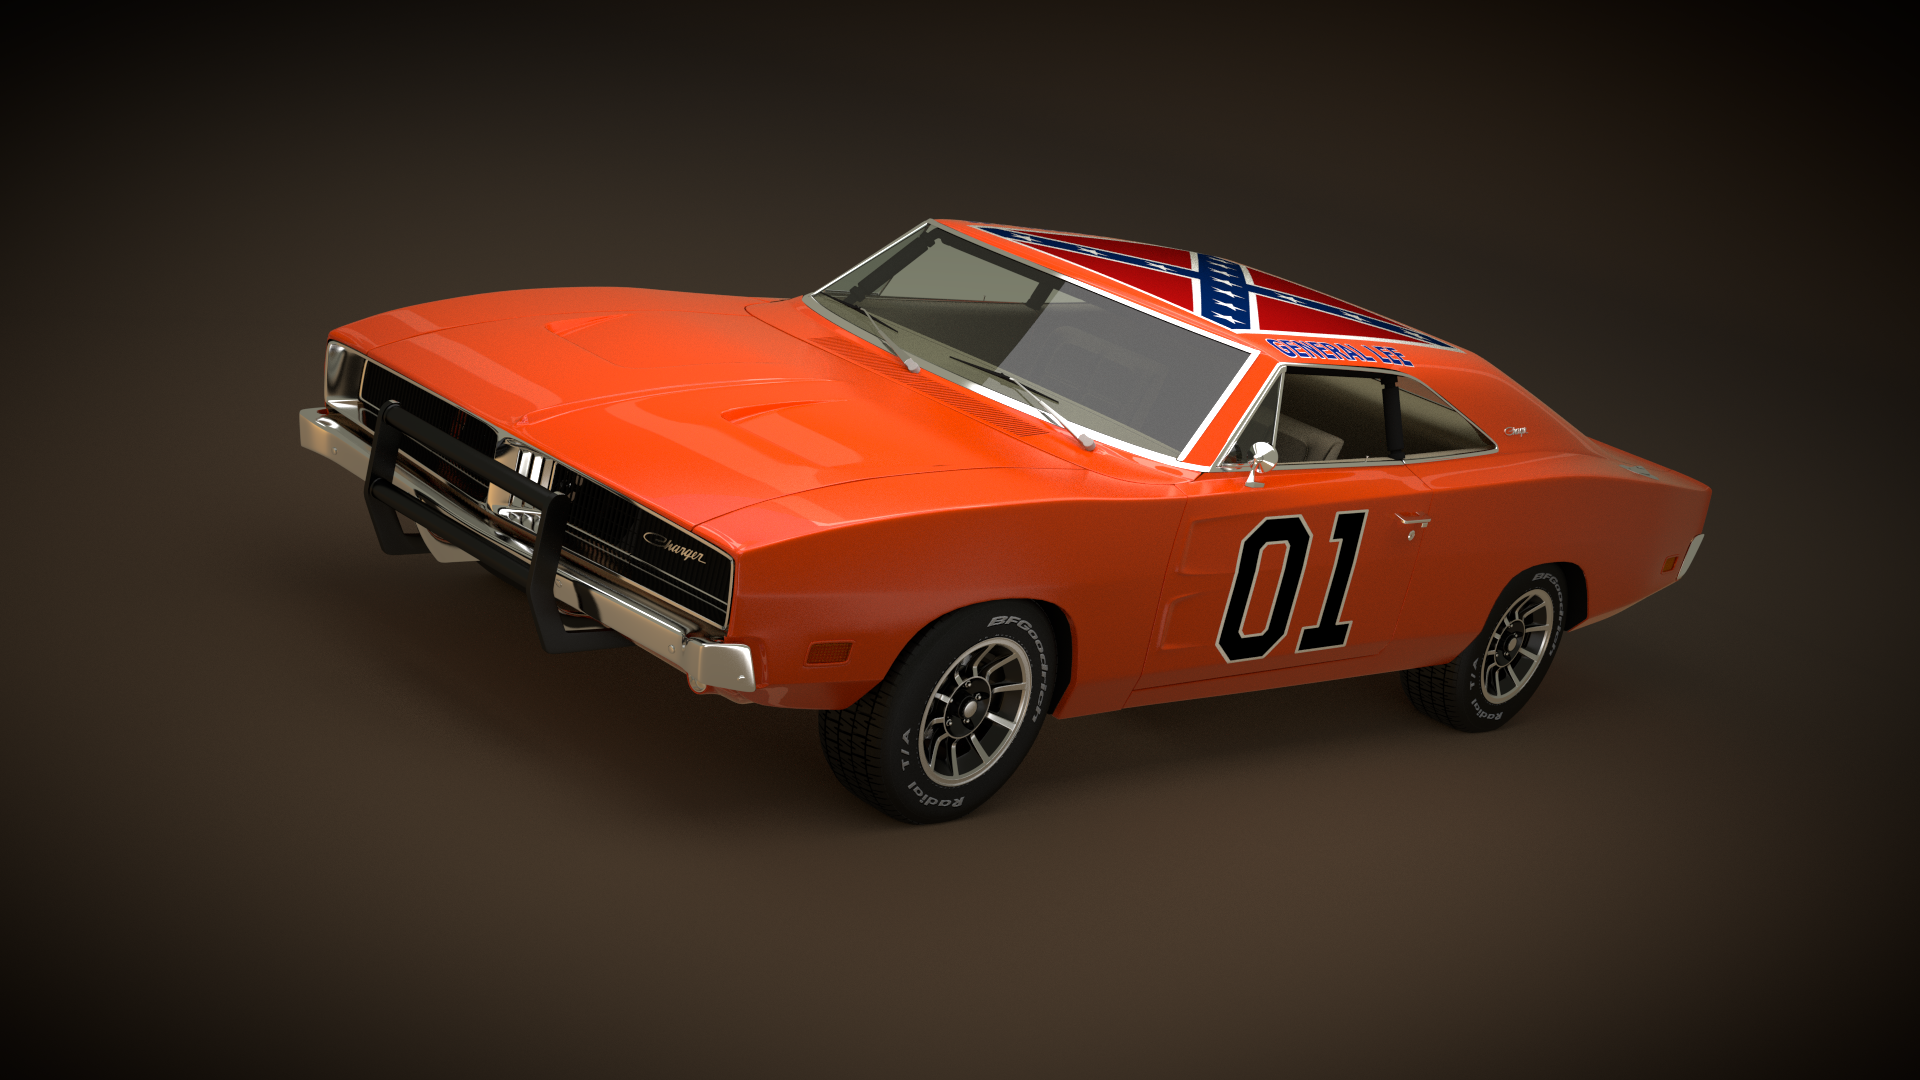 The Dukes of Hazzard - 1969 Dodge Charger by Neubi3D on ...  The Dukes Of Hazzard 2017 Car